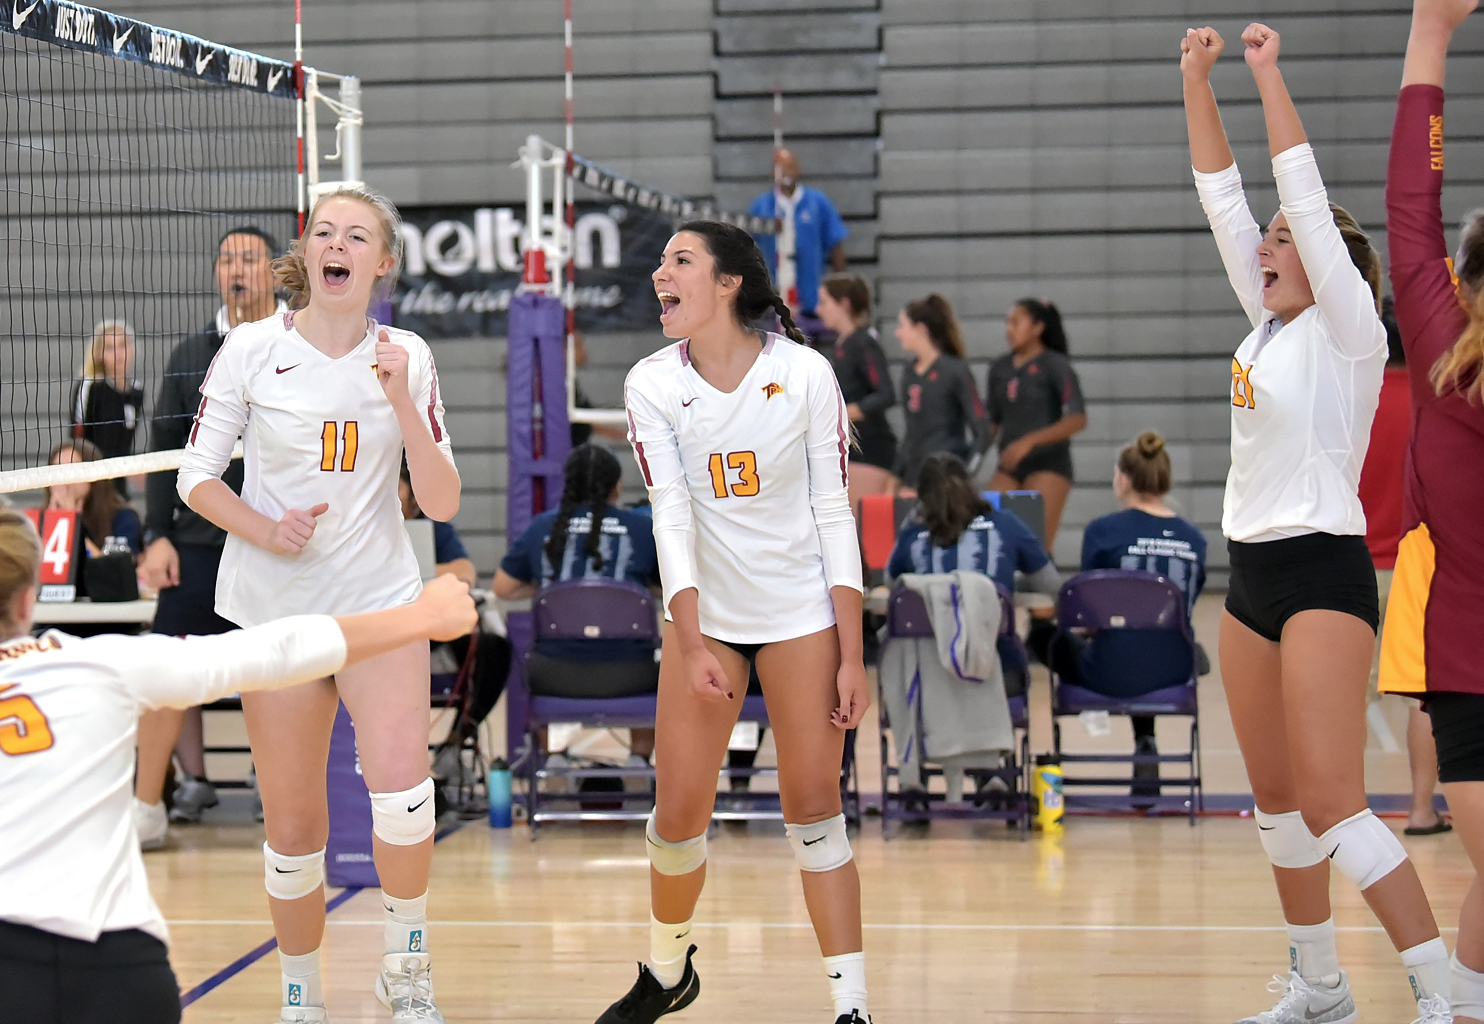 Ohsaa Interactive Ohio High School Postseason Volleyball Brackets And Live Scores Maxpreps